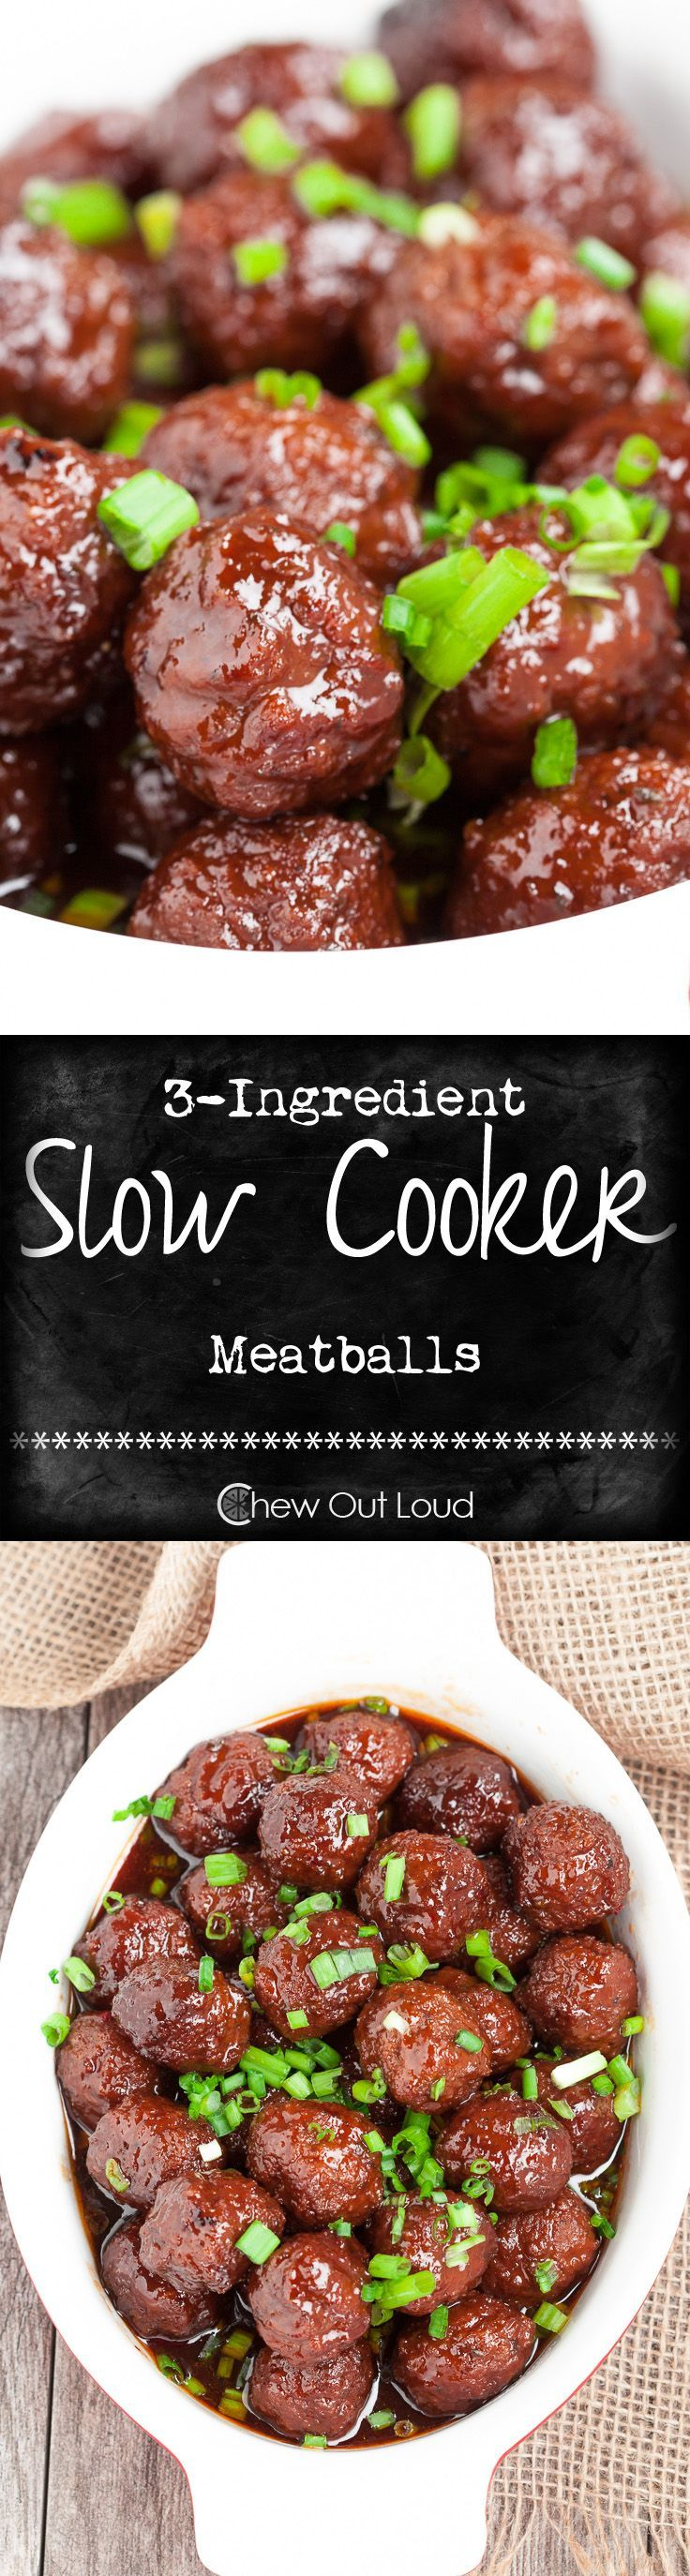 3-Ingredient Slow Cooker Meatballs - Incredibly easy, scrumptious recipe for any party appetizer!  We even pour it over pasta and rice for dinner...YUM!